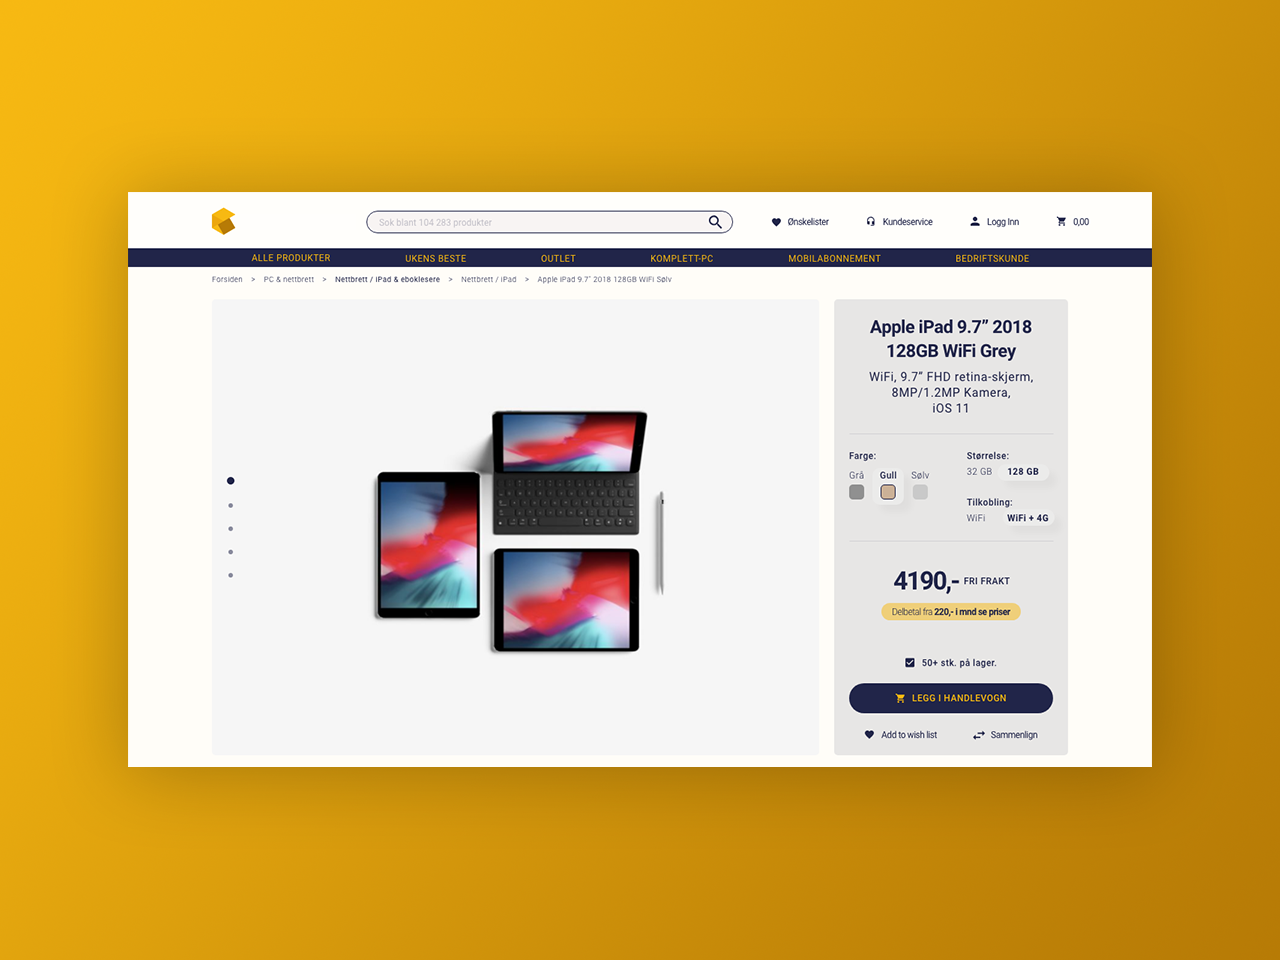 Product Page Design product page design adobe photoshop adobe xd ui design